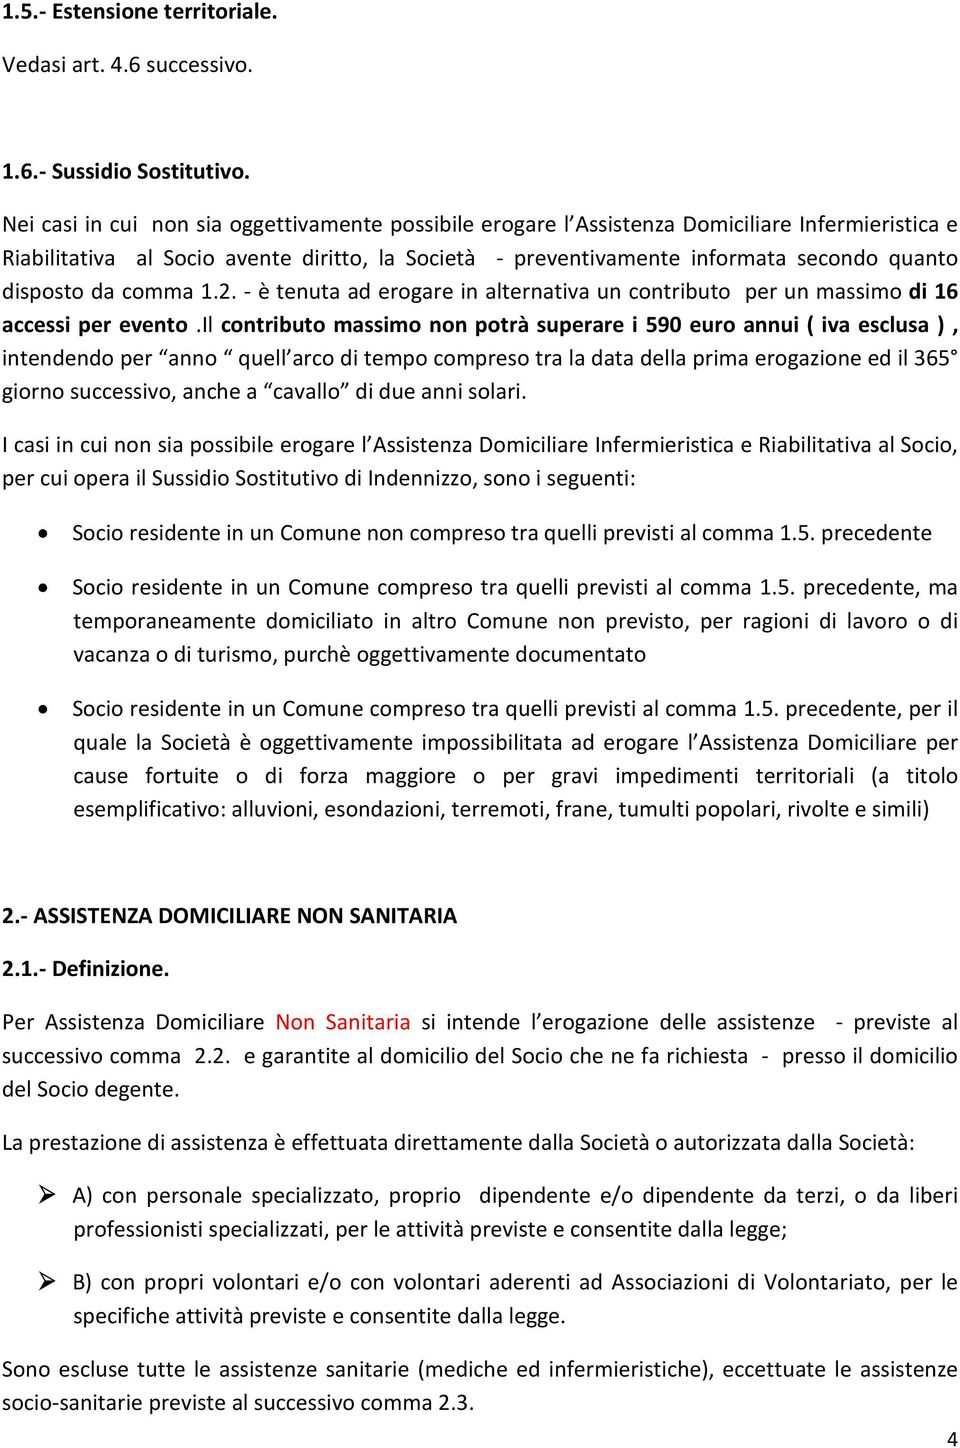 disposto da comma 1.2. - è tenuta ad erogare in alternativa un contributo per un massimo di 16 accessi per evento.